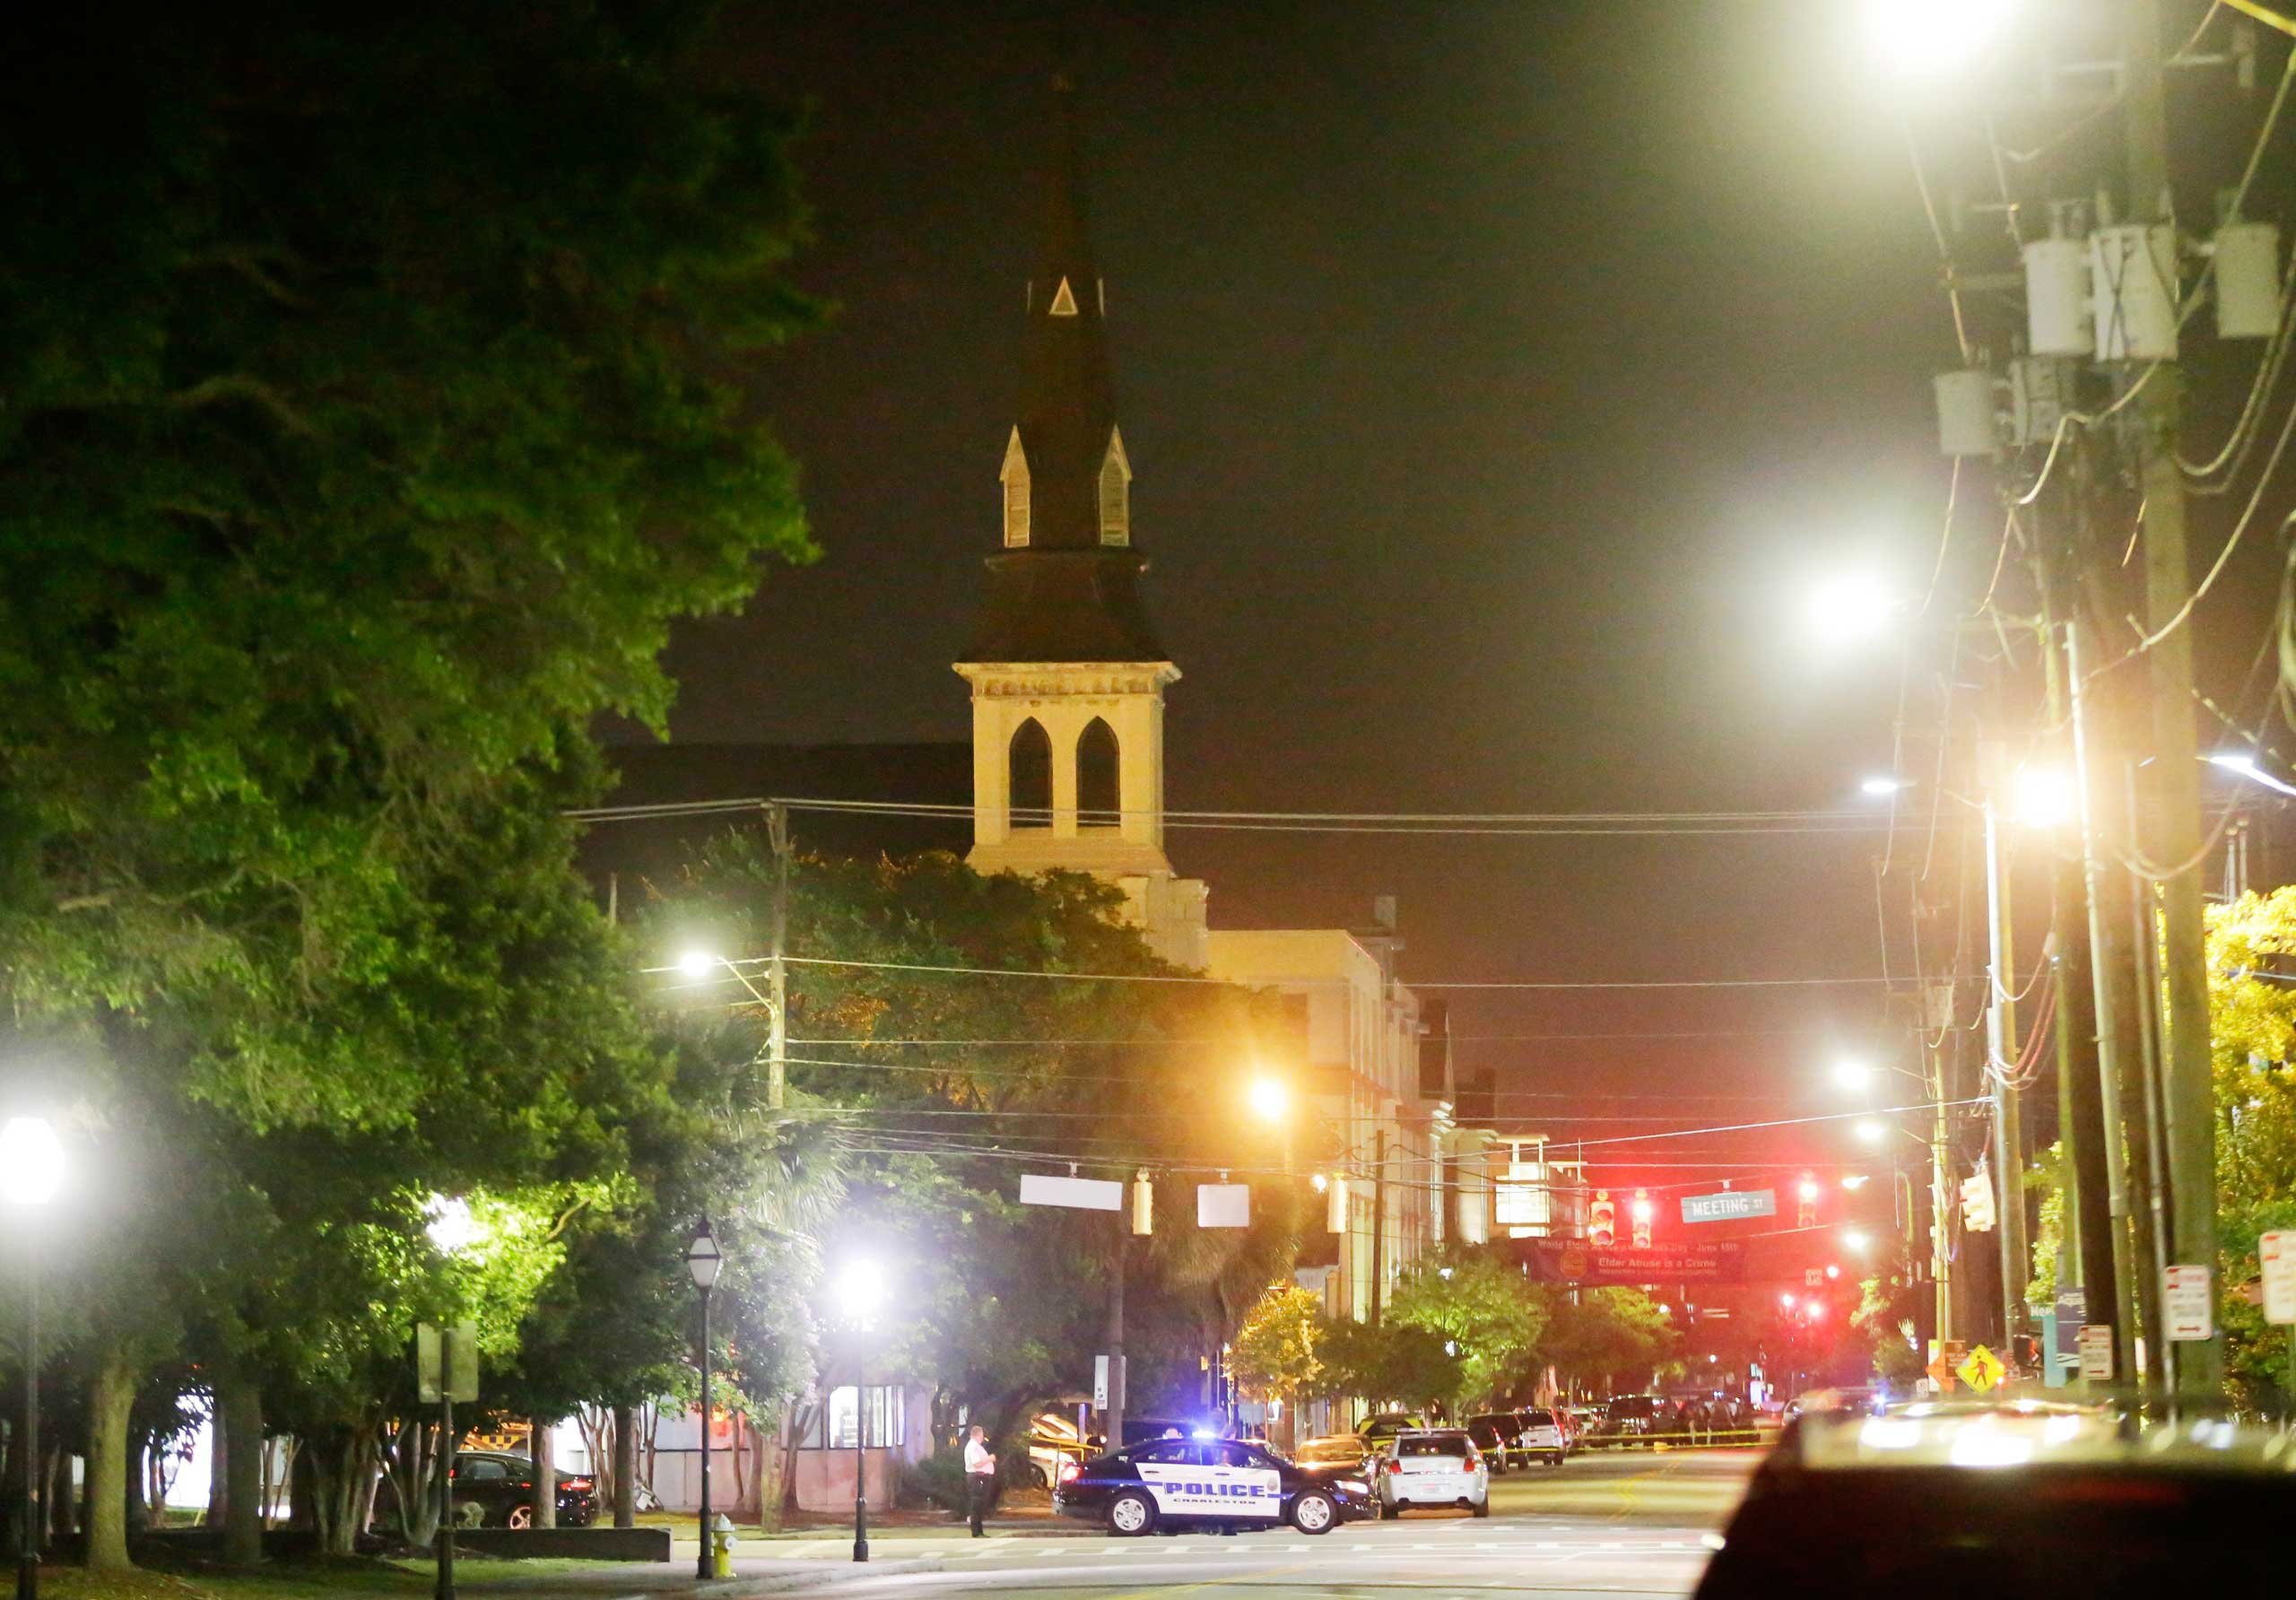 The steeple of Emanuel AME Church is visible as police close off a section of Calhoun Street early on June 18, 2015 following a shooting Wednesday night in Charleston, S.C.